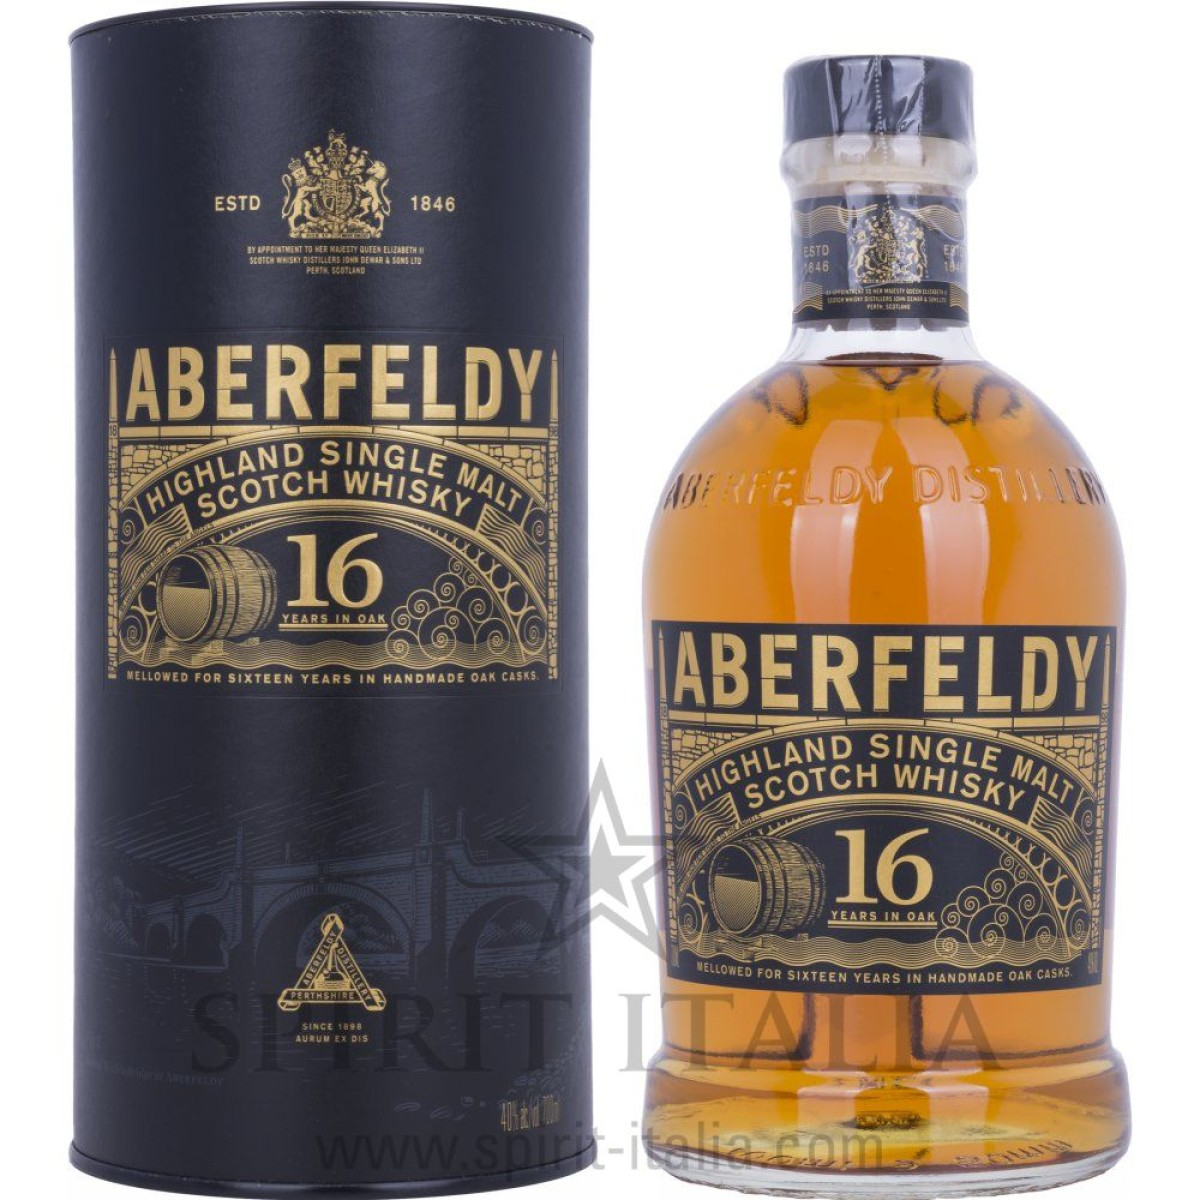 Aberfeldy 16 Years Old Highland Single Malt Scotch Whisky + GB